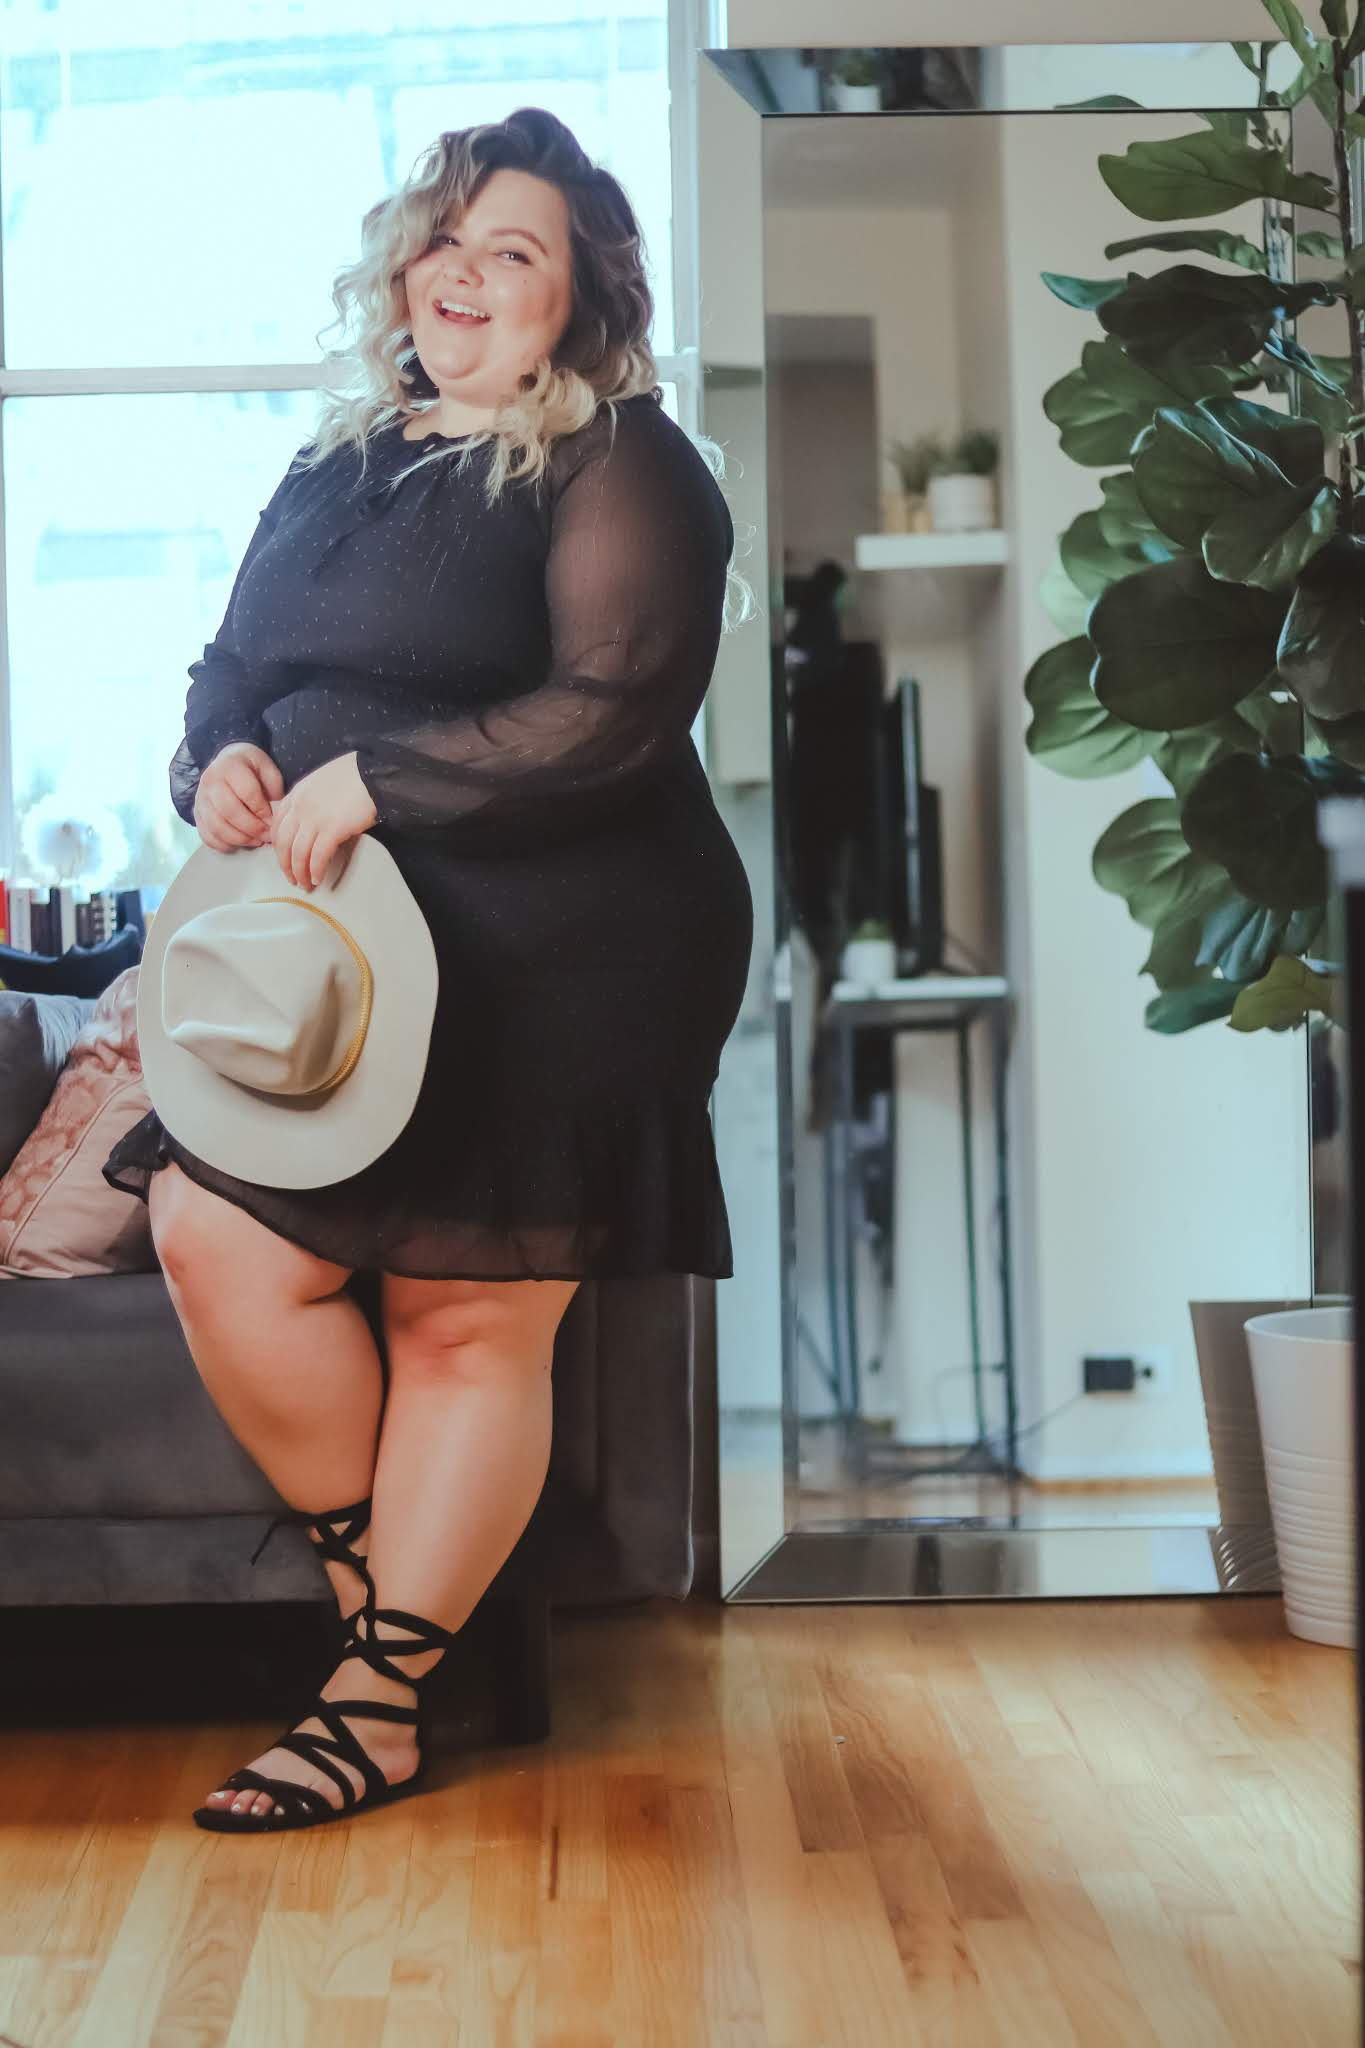 Chicago Plus Size Petite Fashion Blogger, influencer, YouTuber, and model Natalie Craig, of Natalie in the City, reviews Common Assembly's ruffle mini dress and addresses confidence and self esteem during COVID-19.